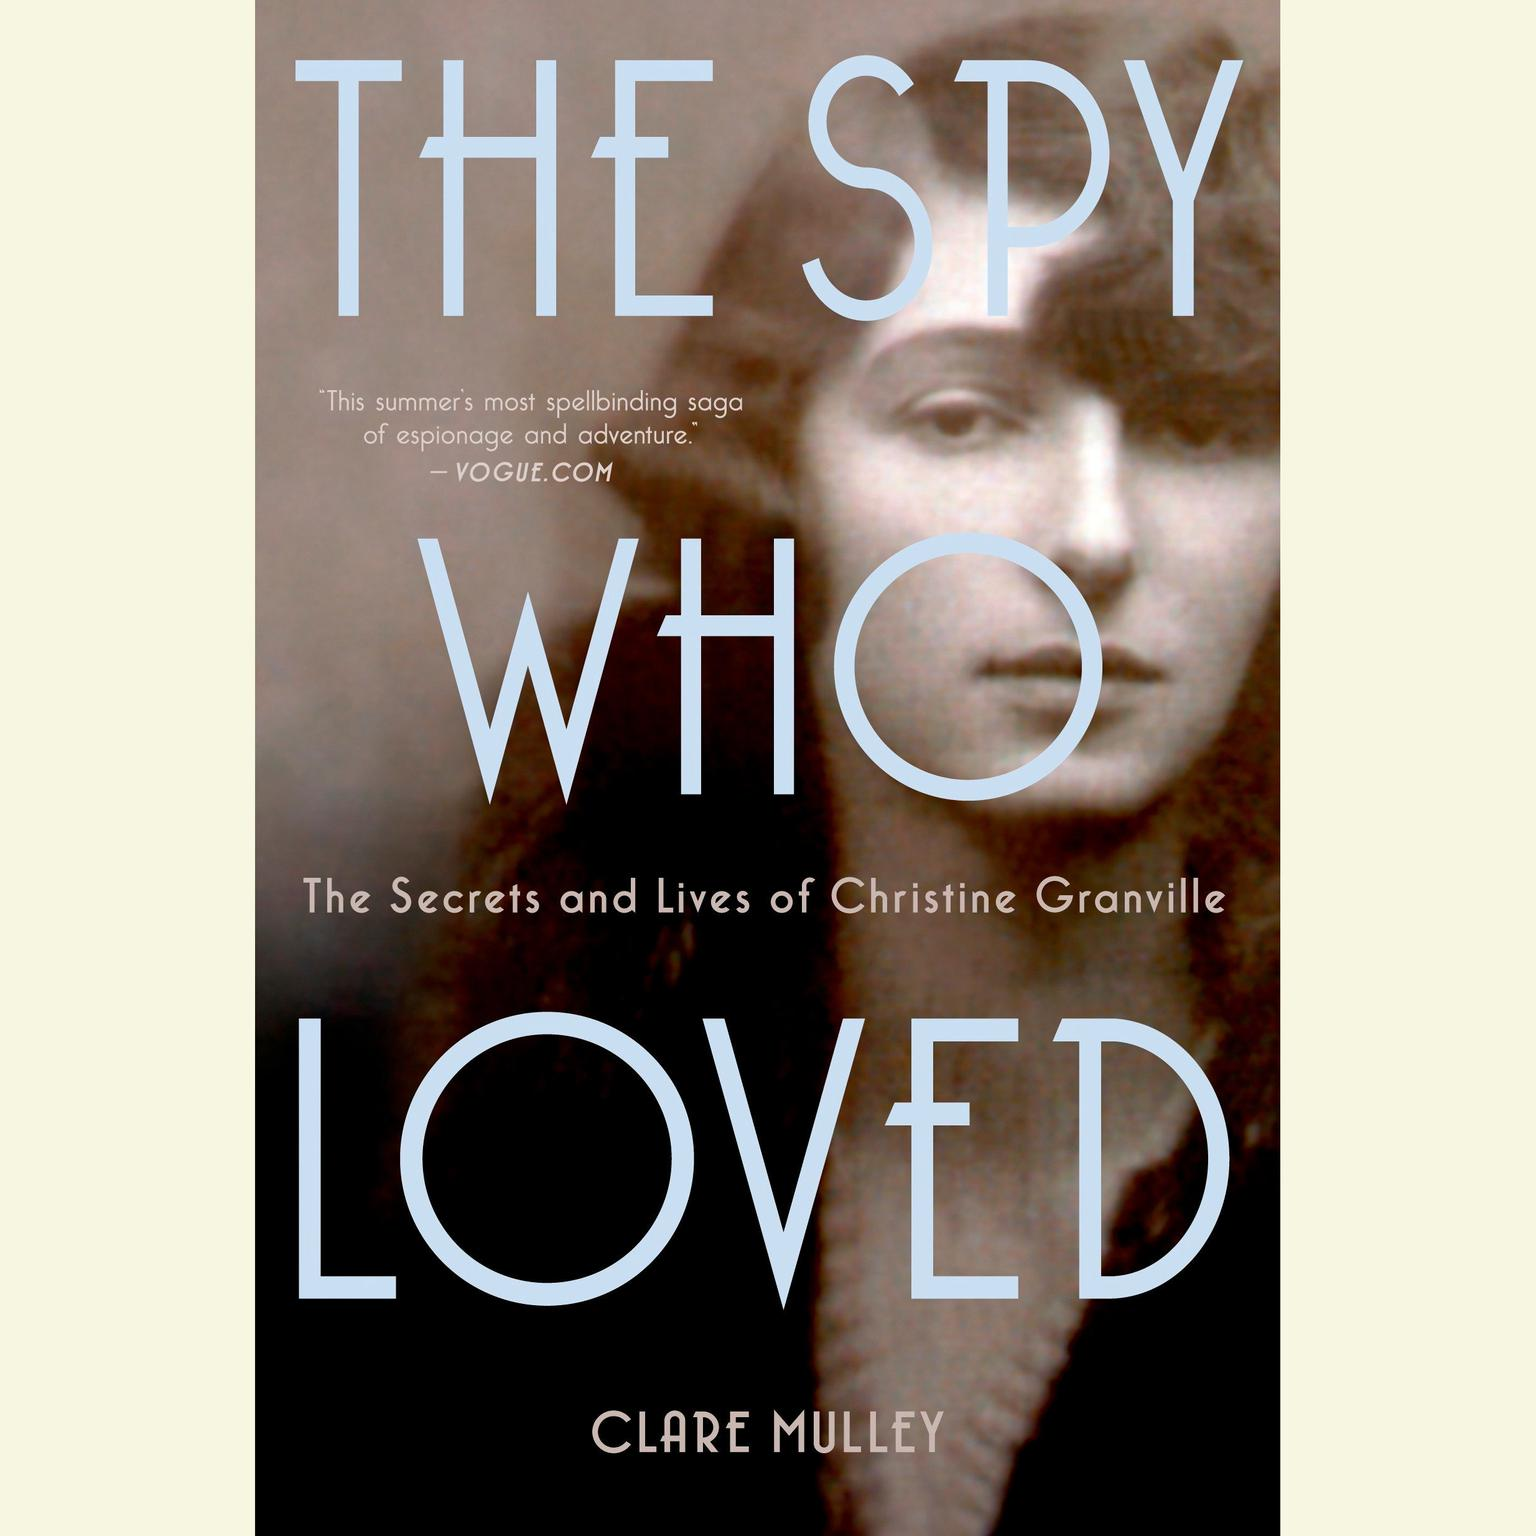 Printable The Spy Who Loved: The Secrets and Lives of Christine Granville Audiobook Cover Art